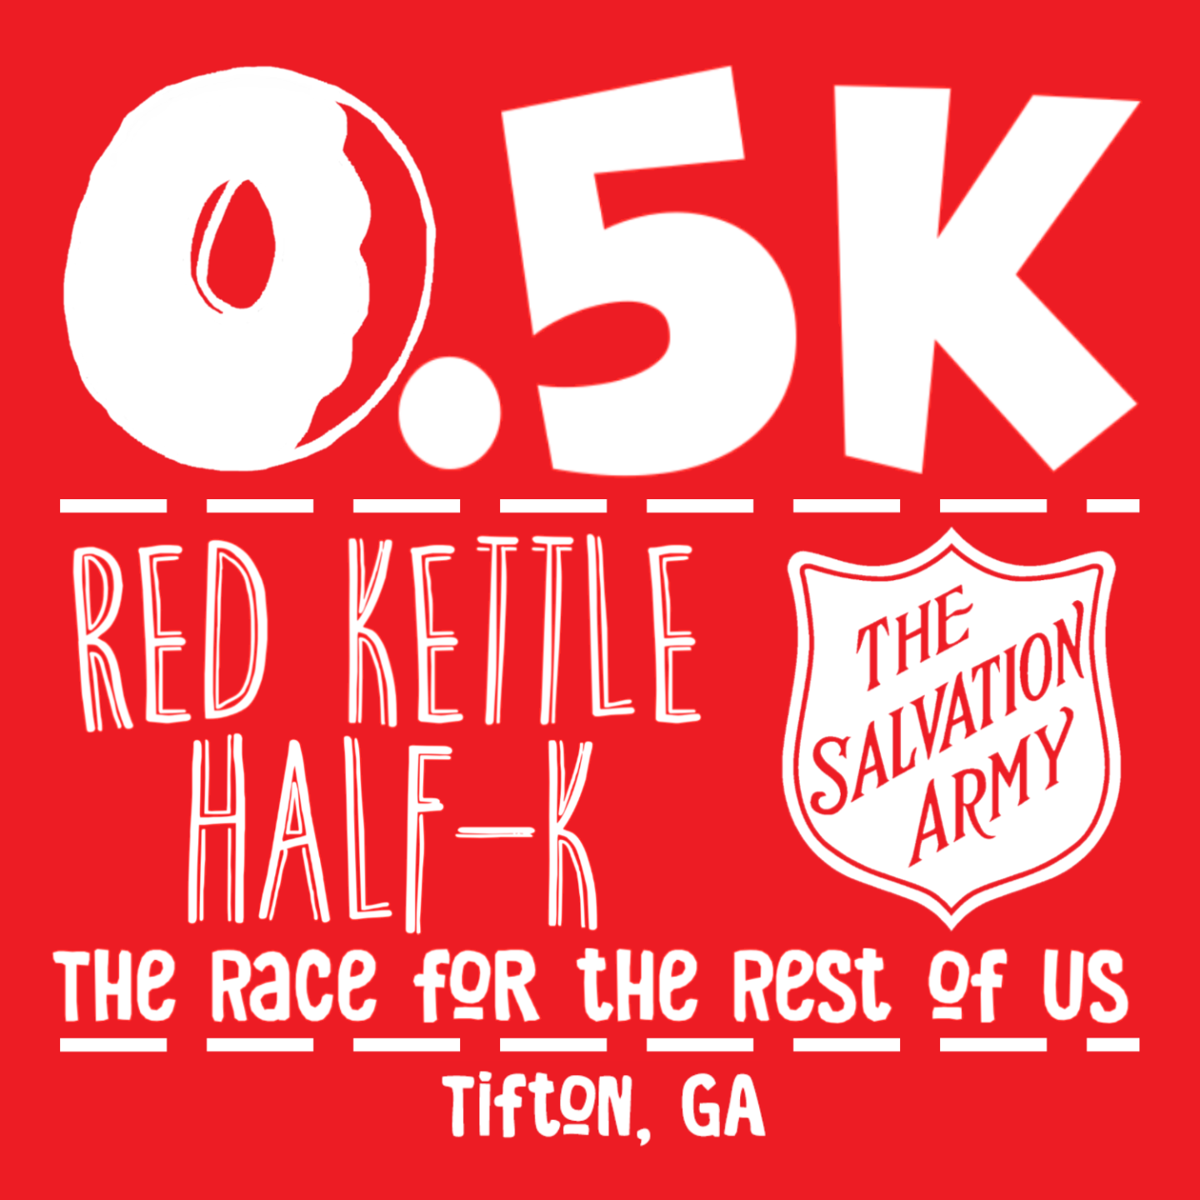 "The Salvation Army of Tifton is kicking off red kettle season by sponsoring a Red Kettle Half-K, billed as ""The Race For The Rest Of Us,"" on Saturday, Nov. 16 at 9 a.m."